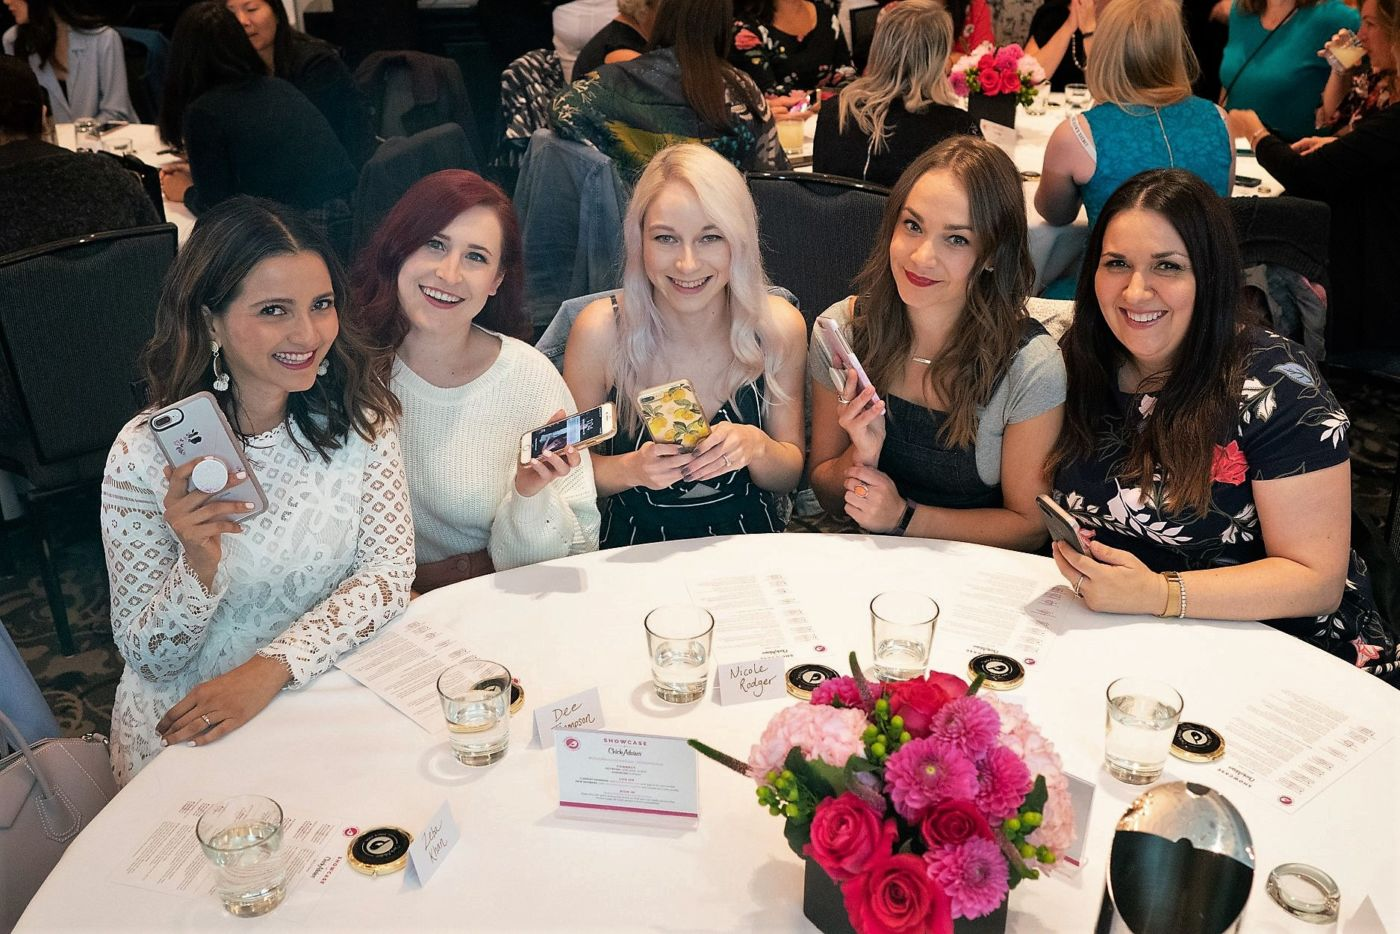 chickadvisor showcase, chickadvisor showcase recap, should i go to chickadvisor showcase, what do you get, toronto events, toronto events for women, ella pretty blog, nicole rae, nelle creations, mom's makeup stash, toronto bloggers, toronto beauty bloggers, canadian bloggers